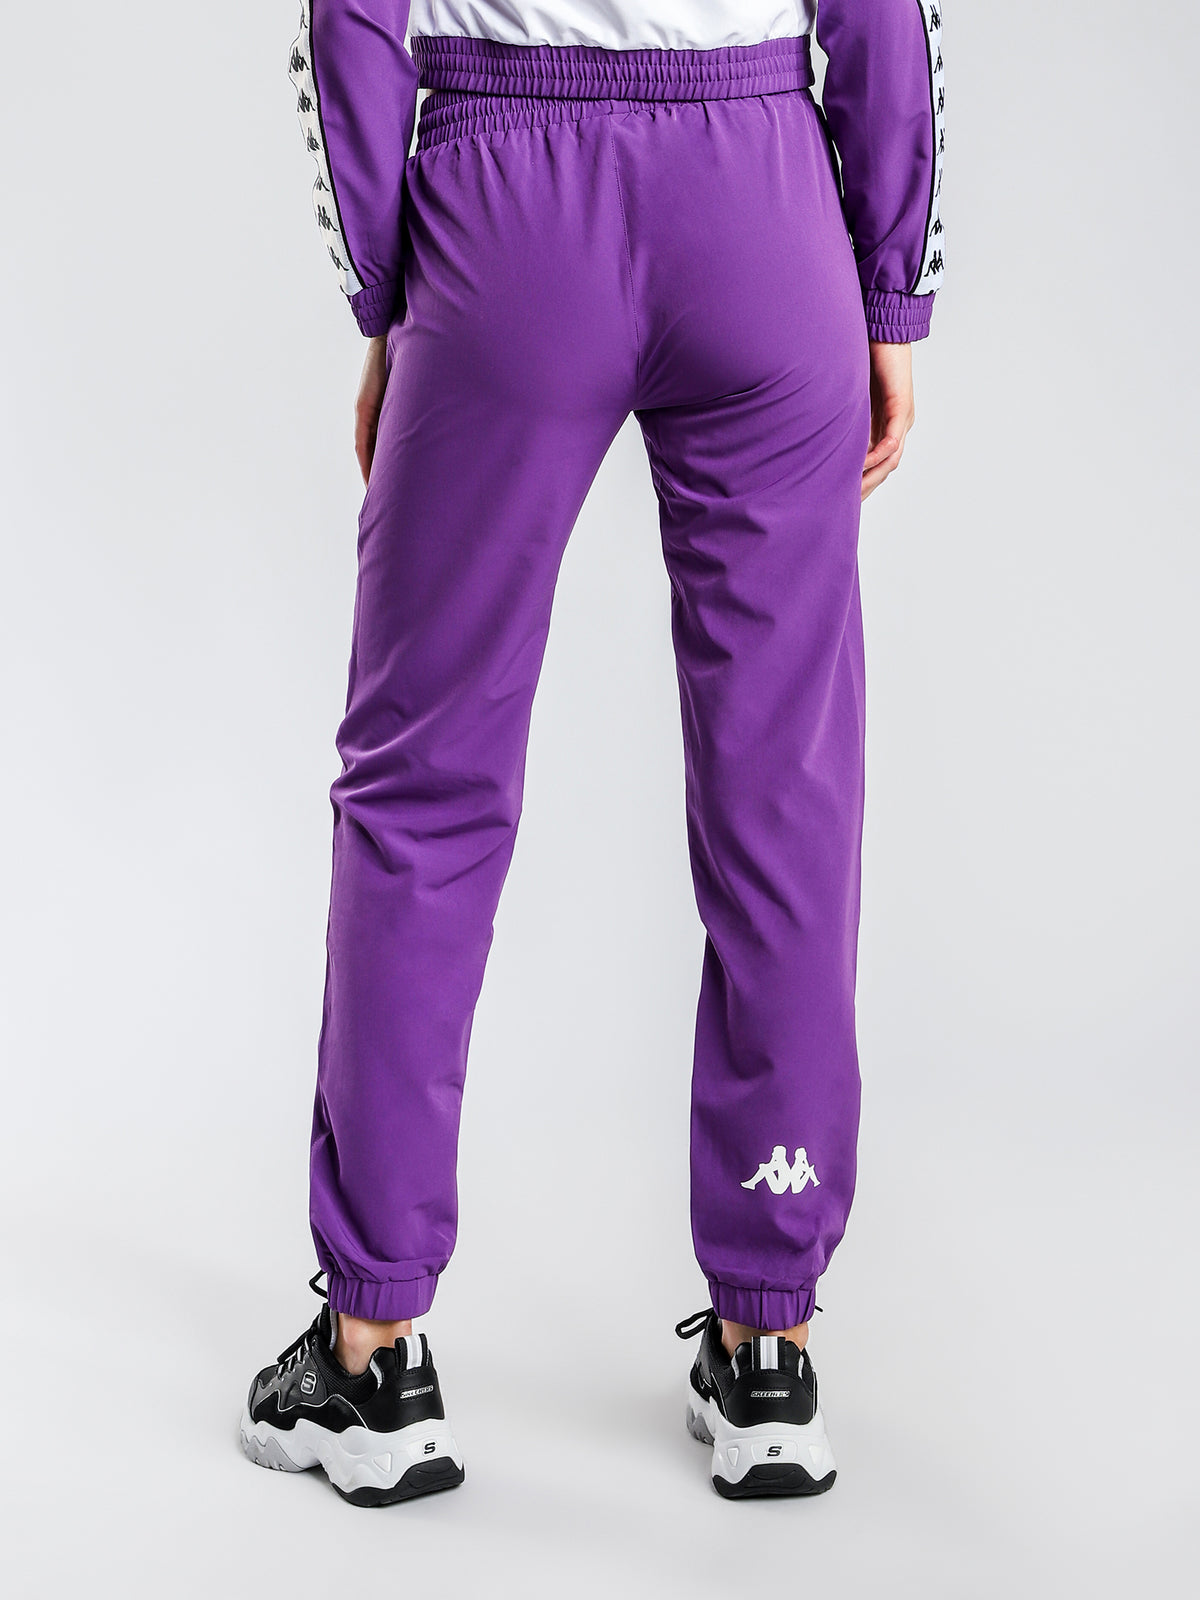 222 Banda Bawon Trackpants in Purple & White